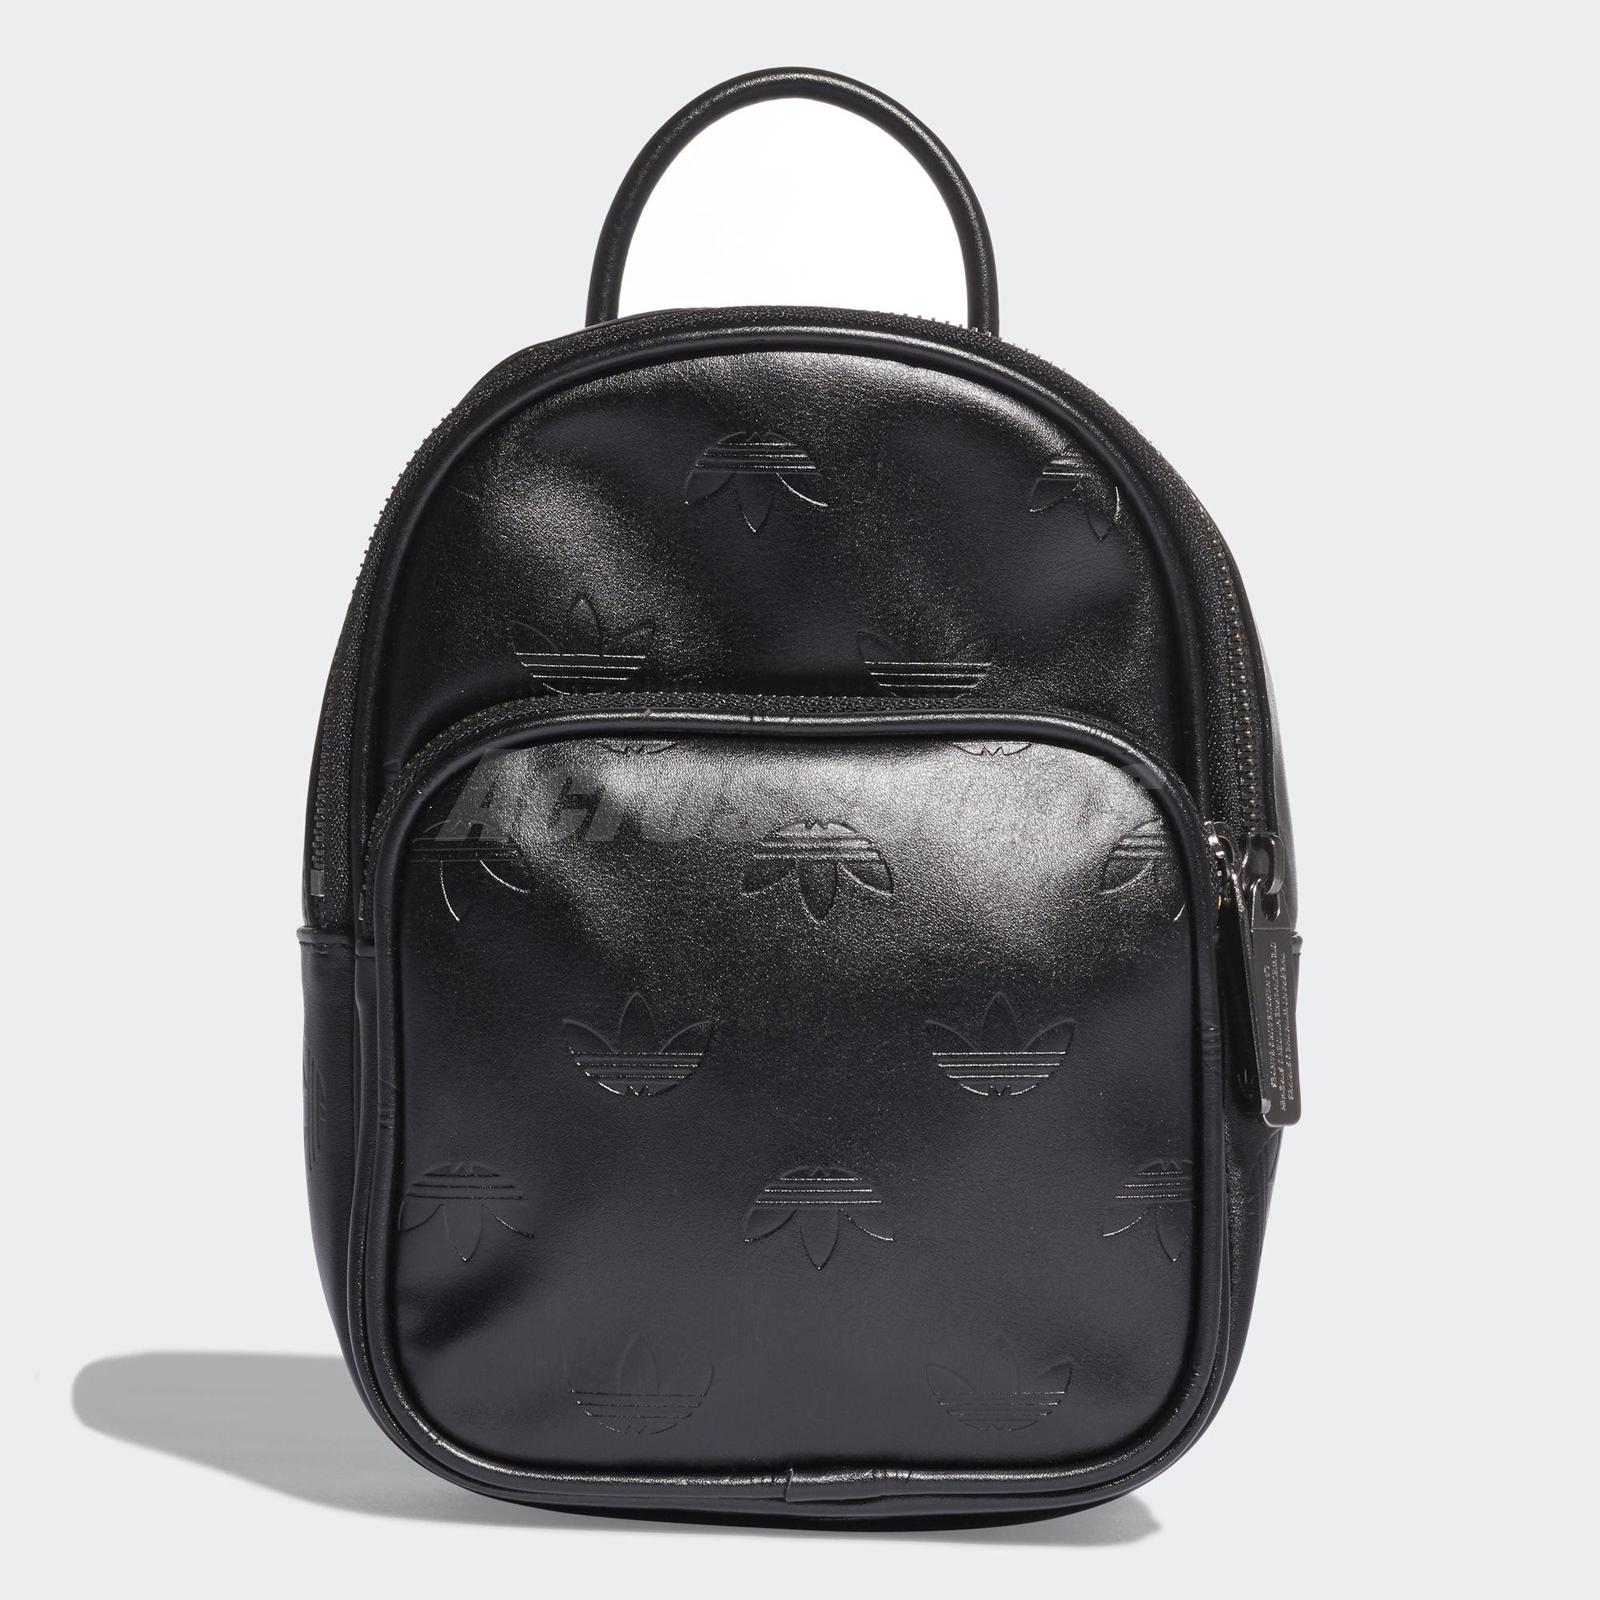 5ee314de6 Adidas Classic Mini Womens Backpack Black | The Shred Centre